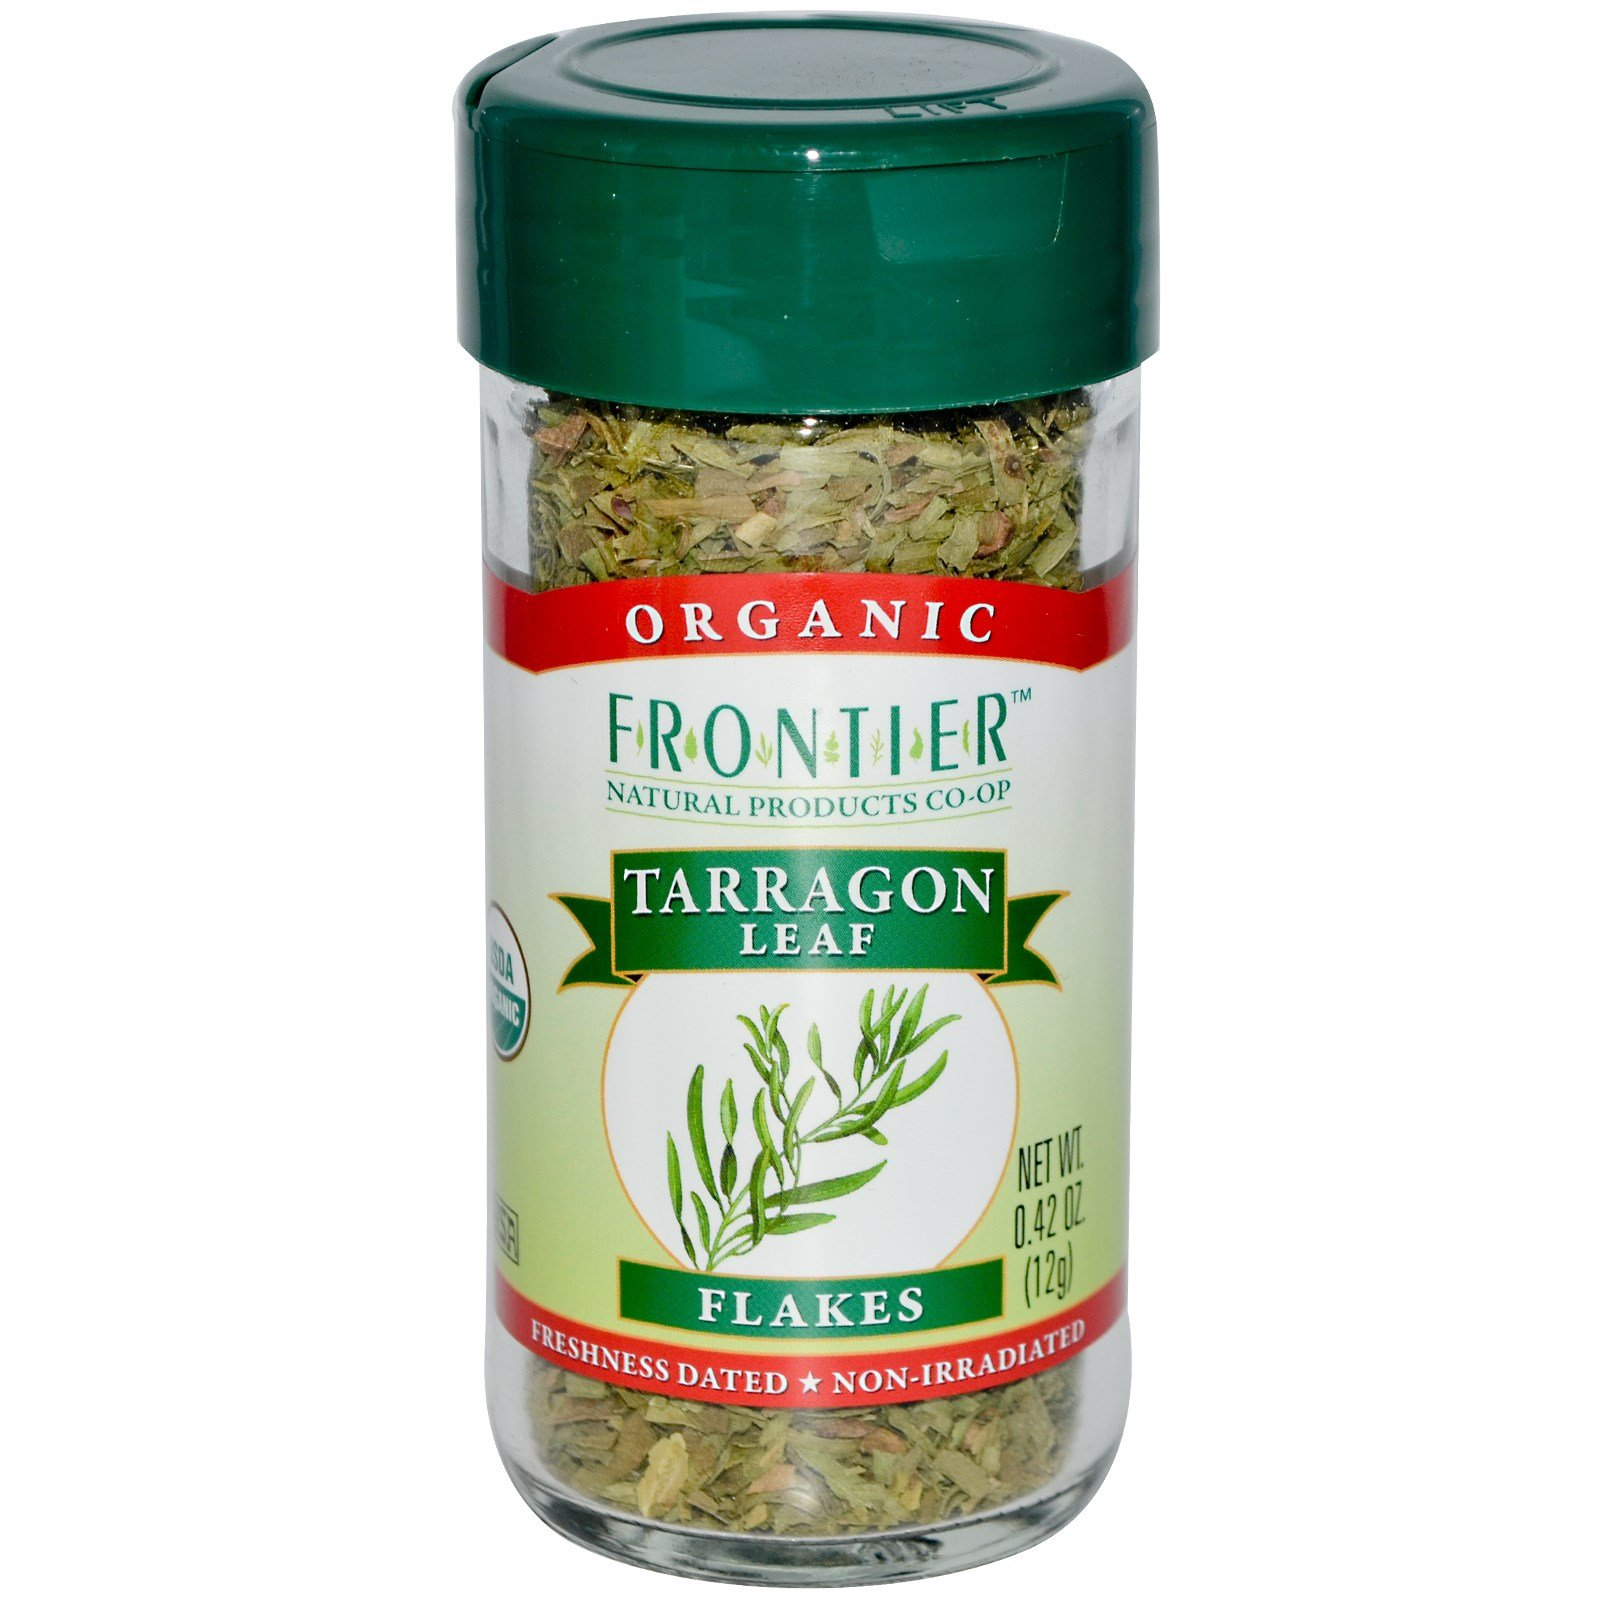 Frontier Natural Products, Organic, Tarragon Leaf Flakes, 0.42 oz (12 g) - 2PC